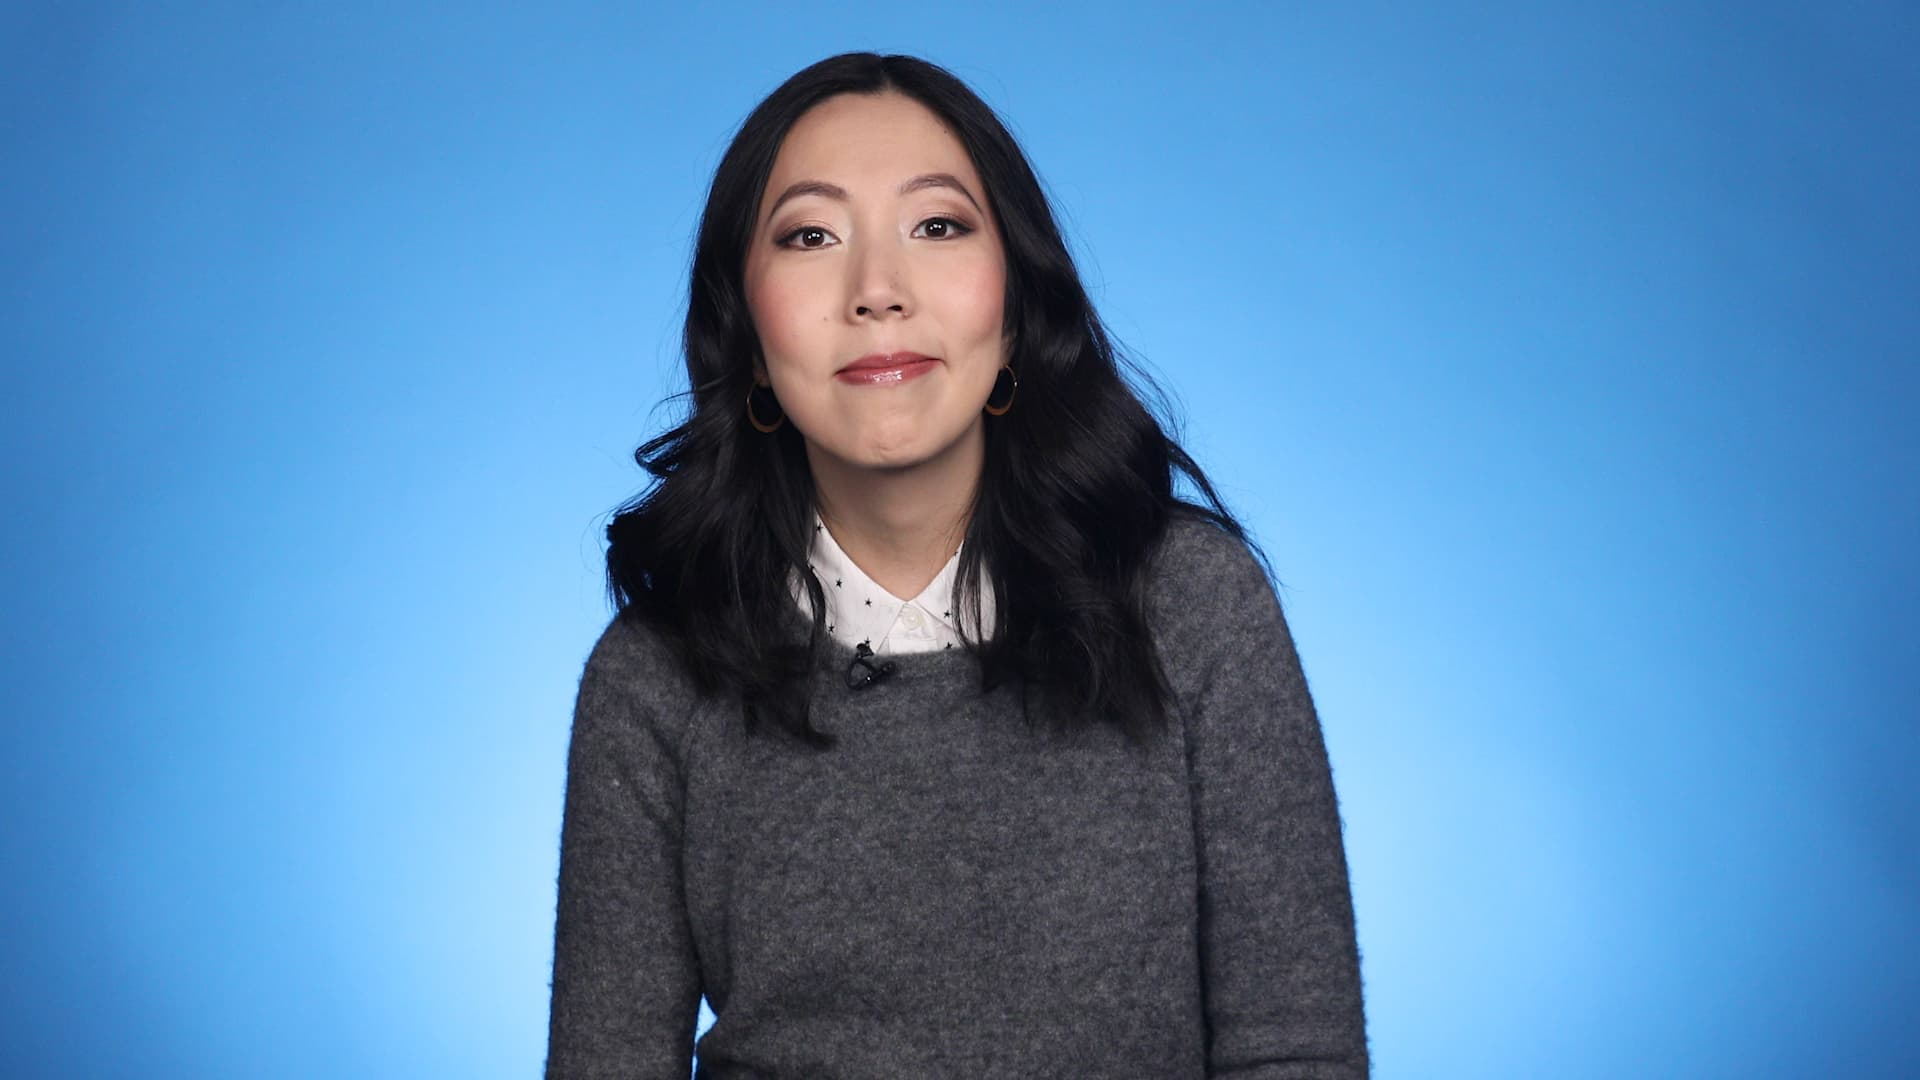 Facebook VP Julie Zhuo: Here's my favorite interview question